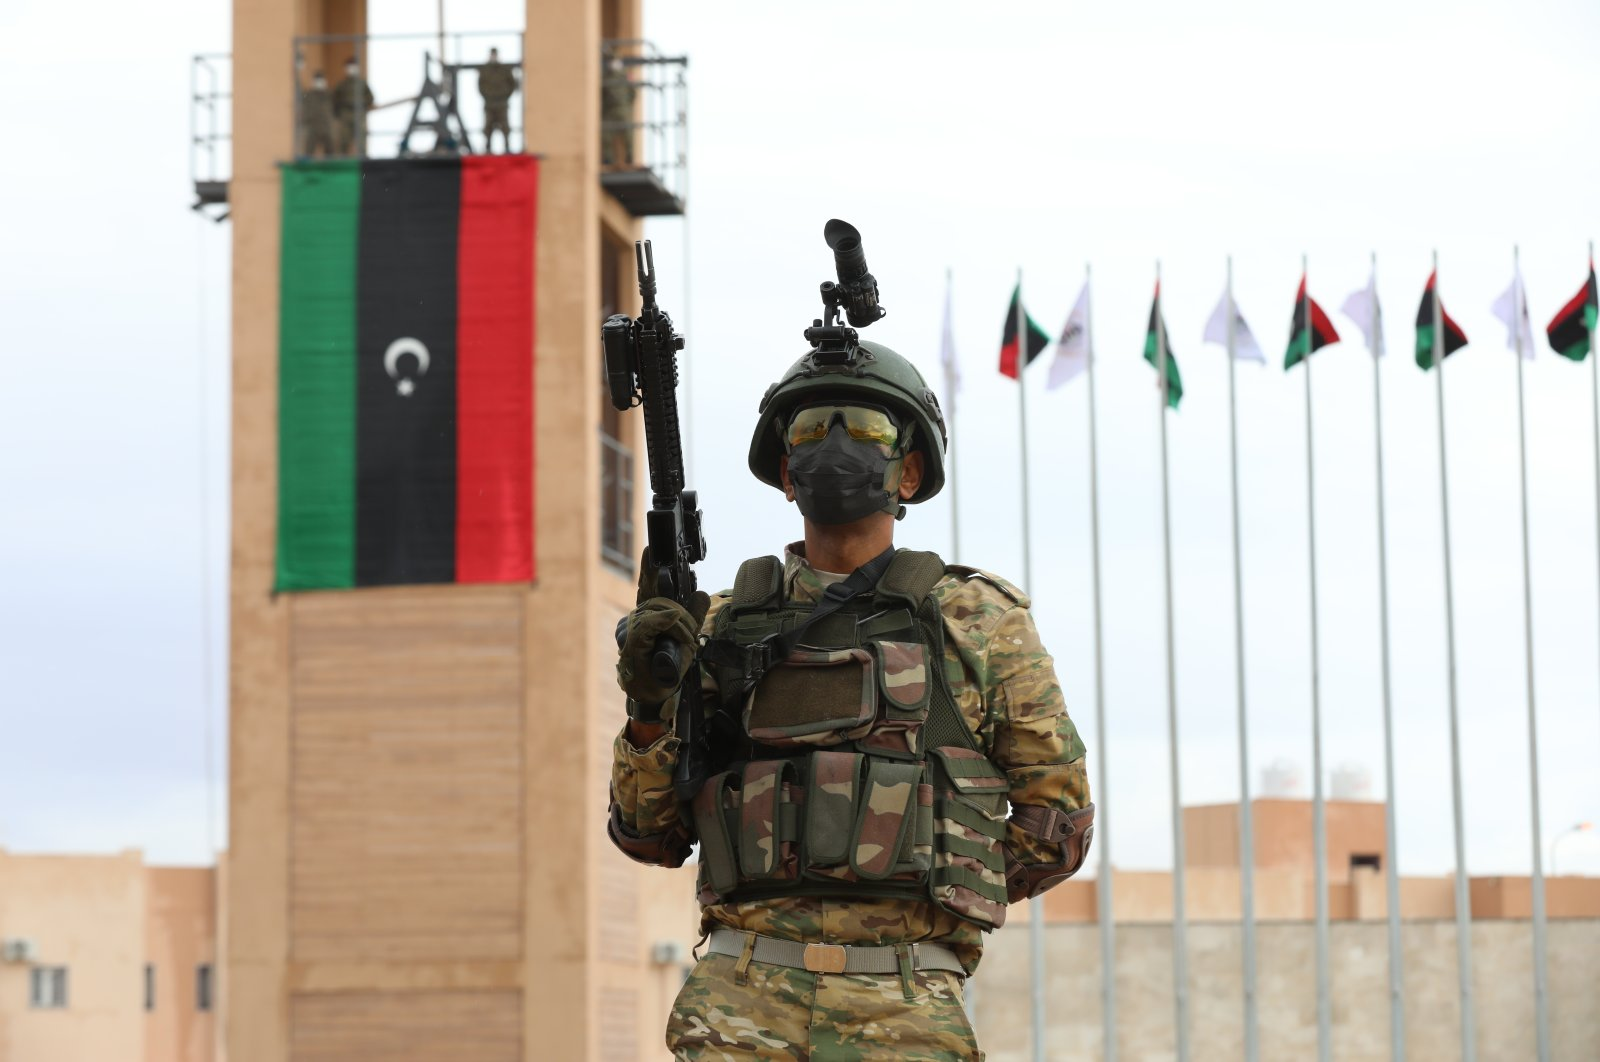 A Libyan soldier poses in front of the Libyan flag during a graduation ceremony concerning a military training program between Ankara and Tripoli, where the joint land training center Omar Mukhtar is located, on Nov. 21, 2020. (AA Photo)